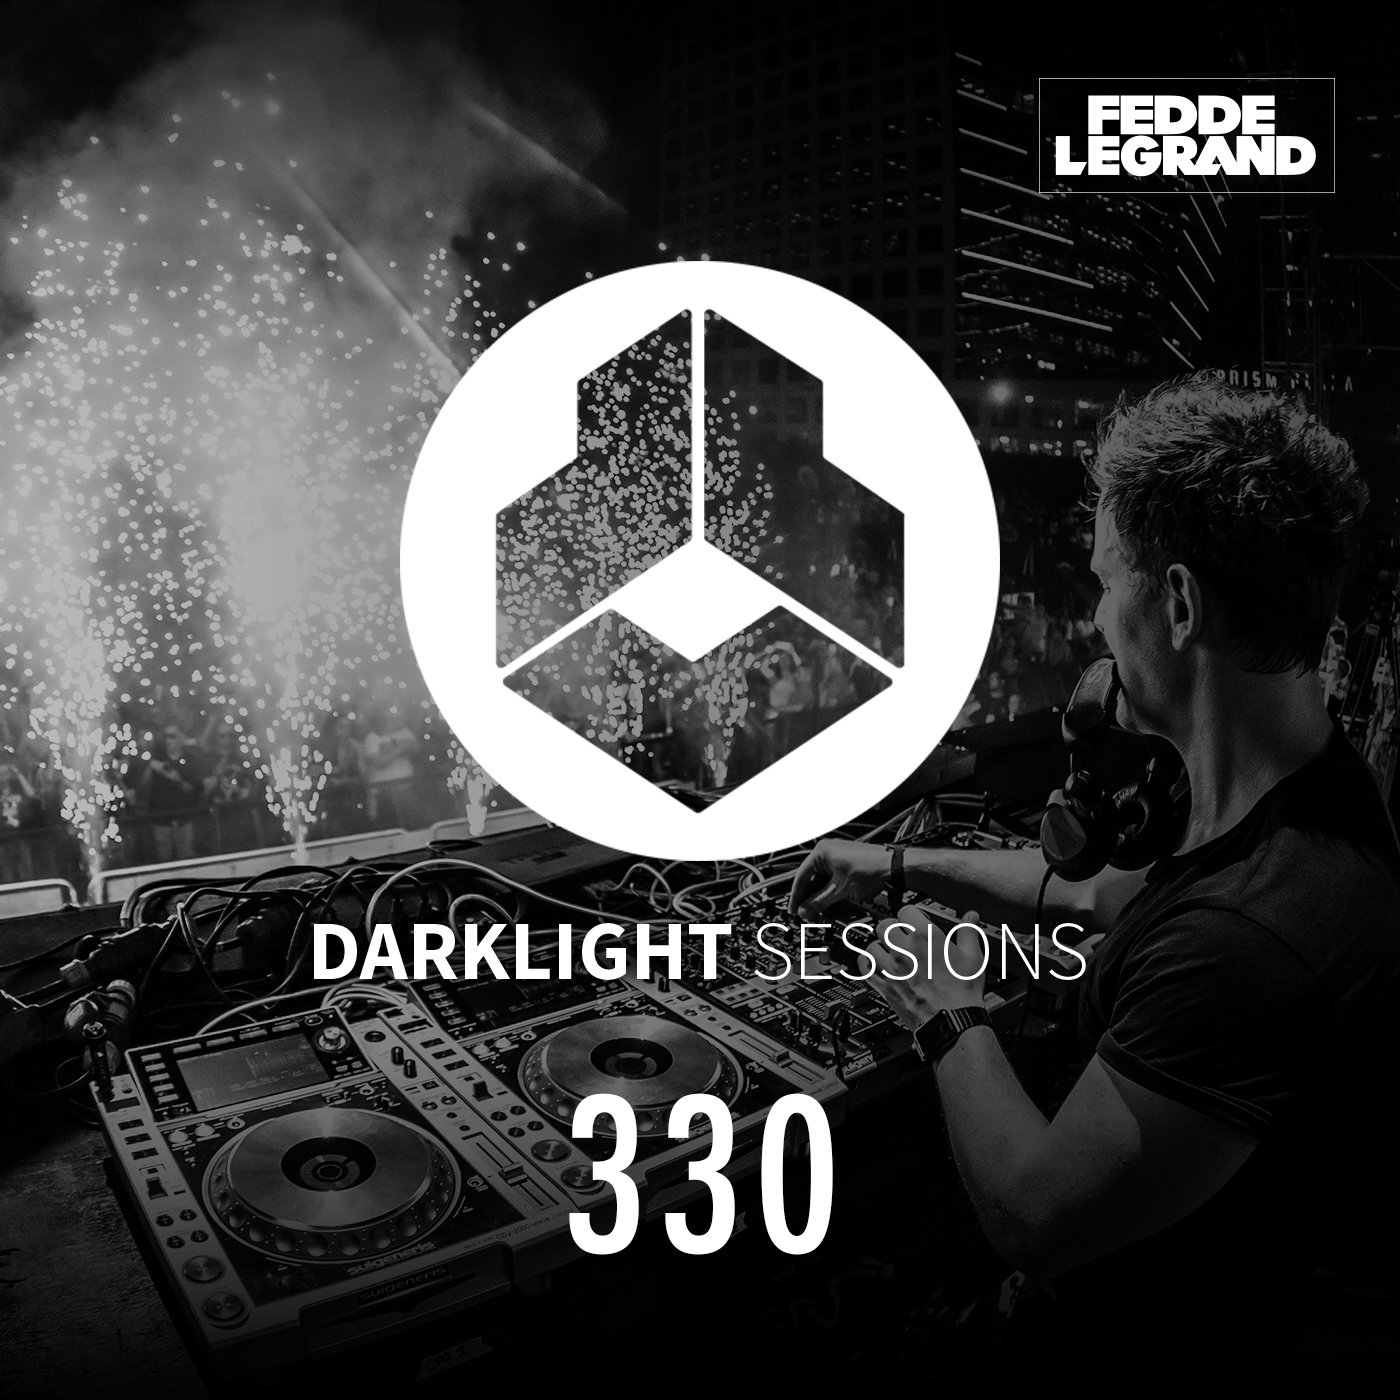 Darklight Sessions 330